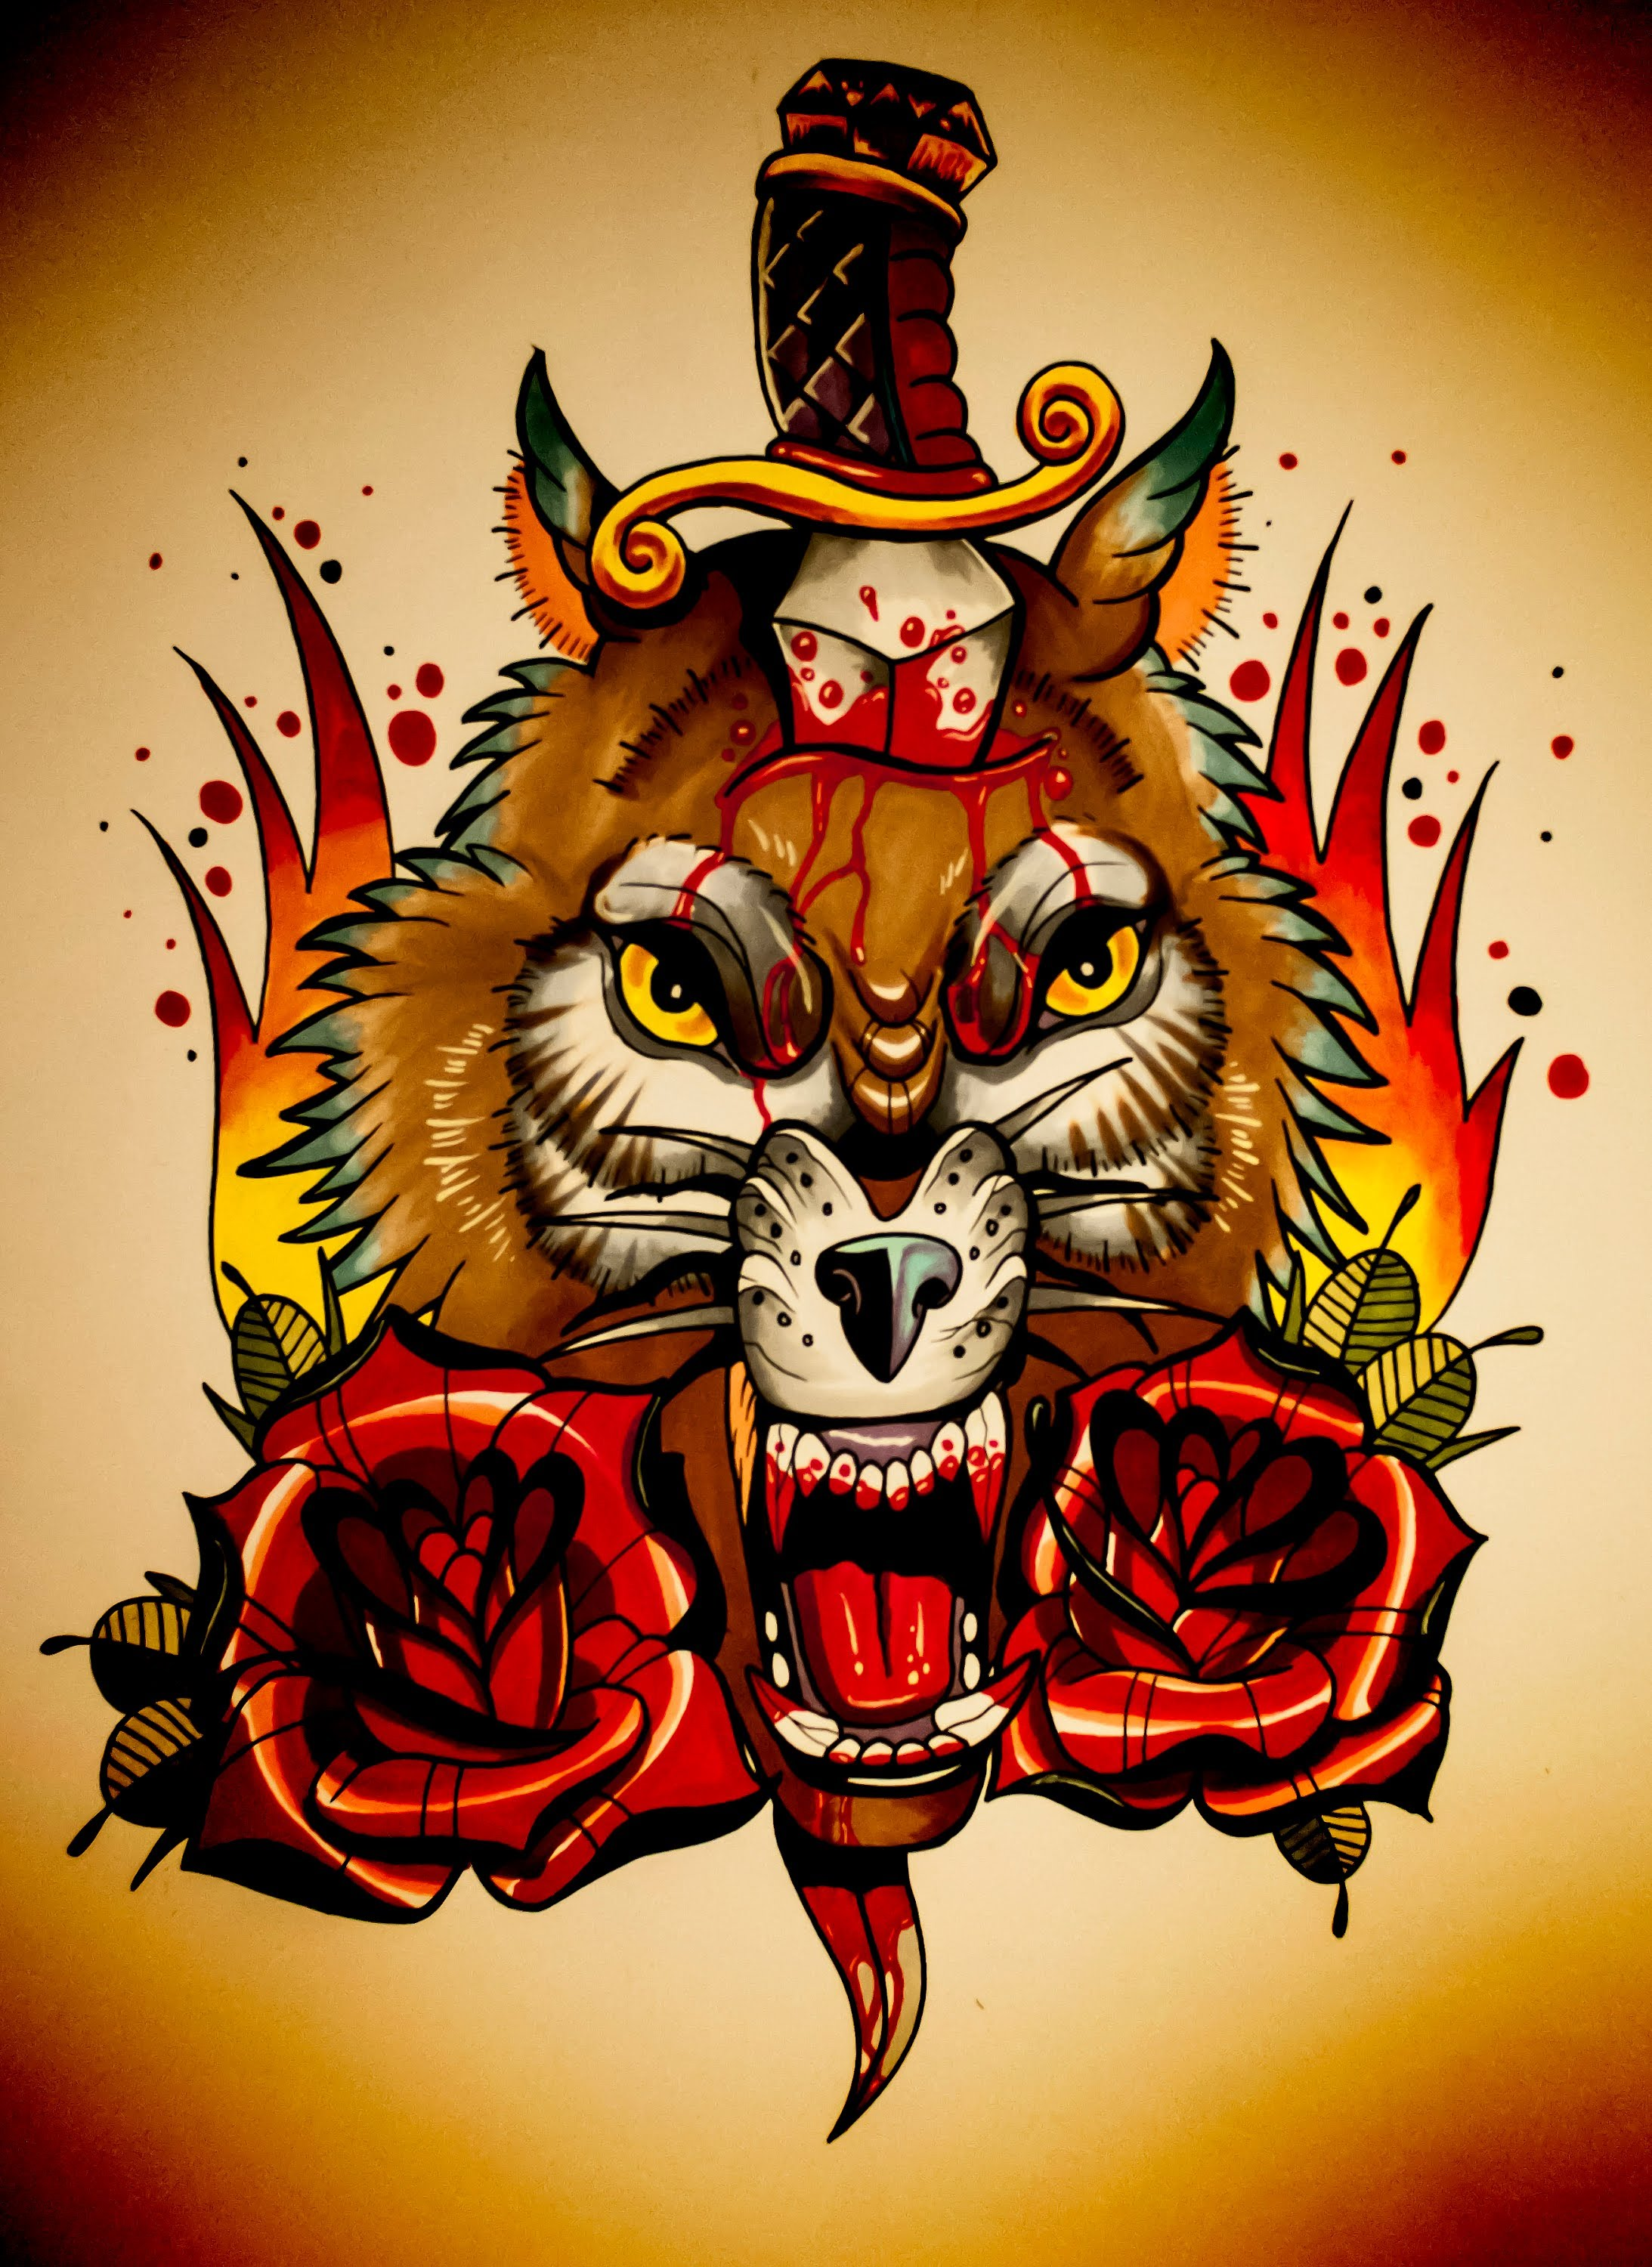 Scary new school colorful wolf head pierced with dagger tattoo design